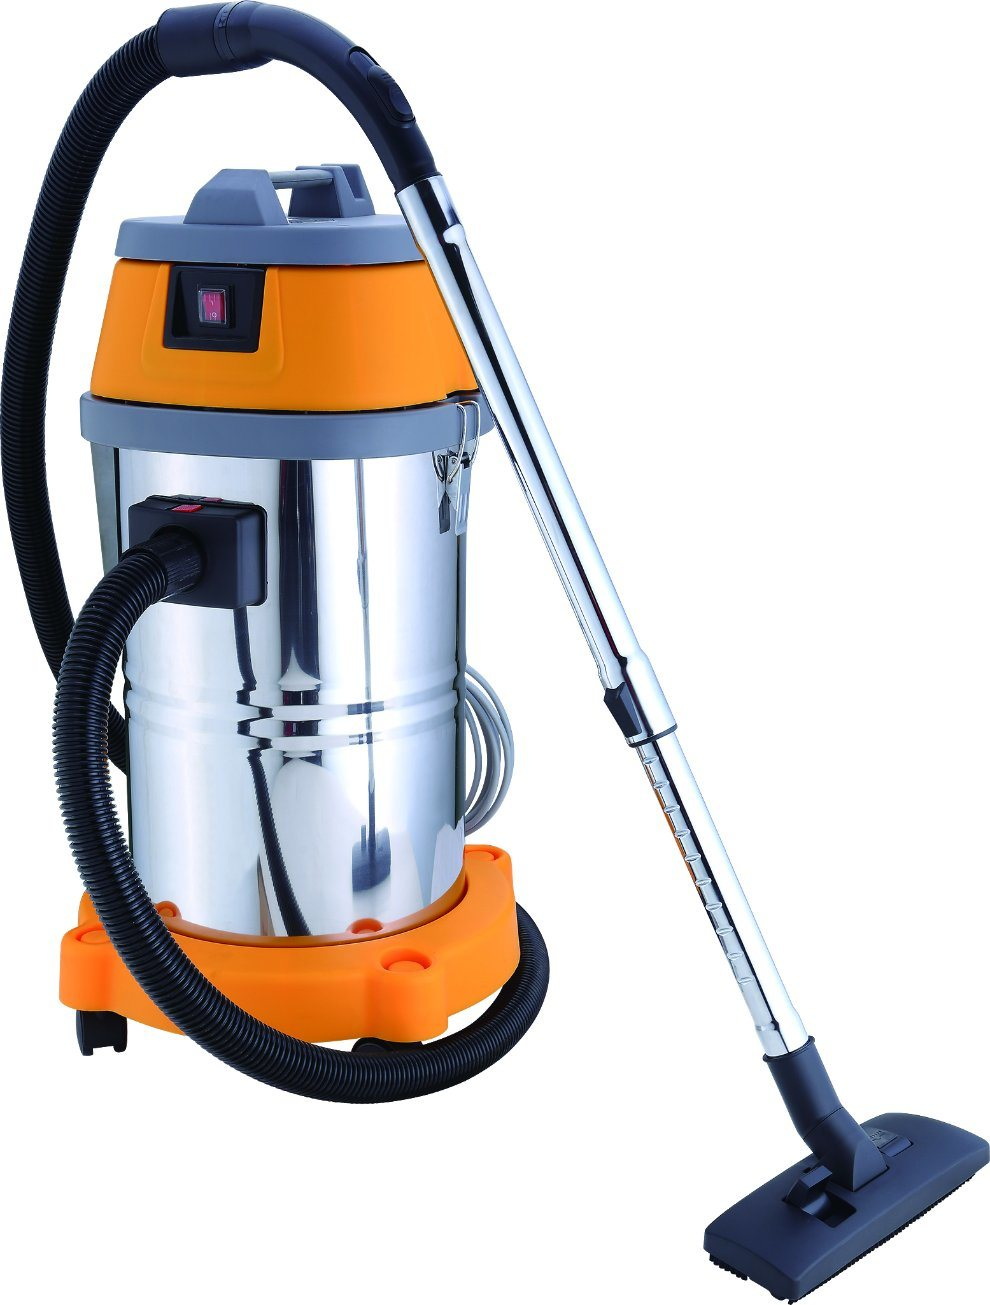 35L Big Filter Wet and Dry Vacuum Cleaner with Cheap Price